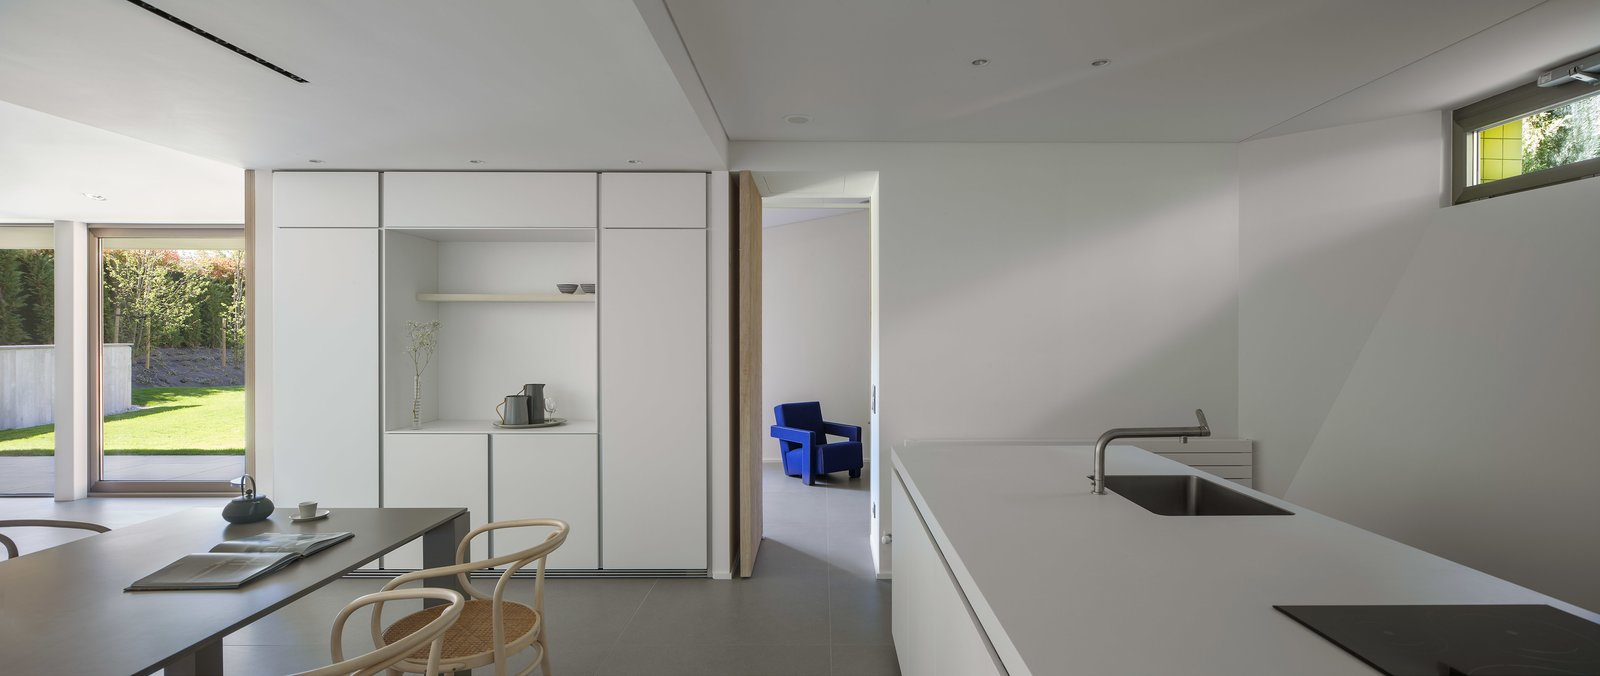 Tagged: Laminate Counter, Porcelain Tile Floor, Ceiling Lighting, White Cabinet, Drop In Sink, Dining Room, Table, Chair, Storage, and Shelves.  The Öcher House by MLMR Architecture Consultancy